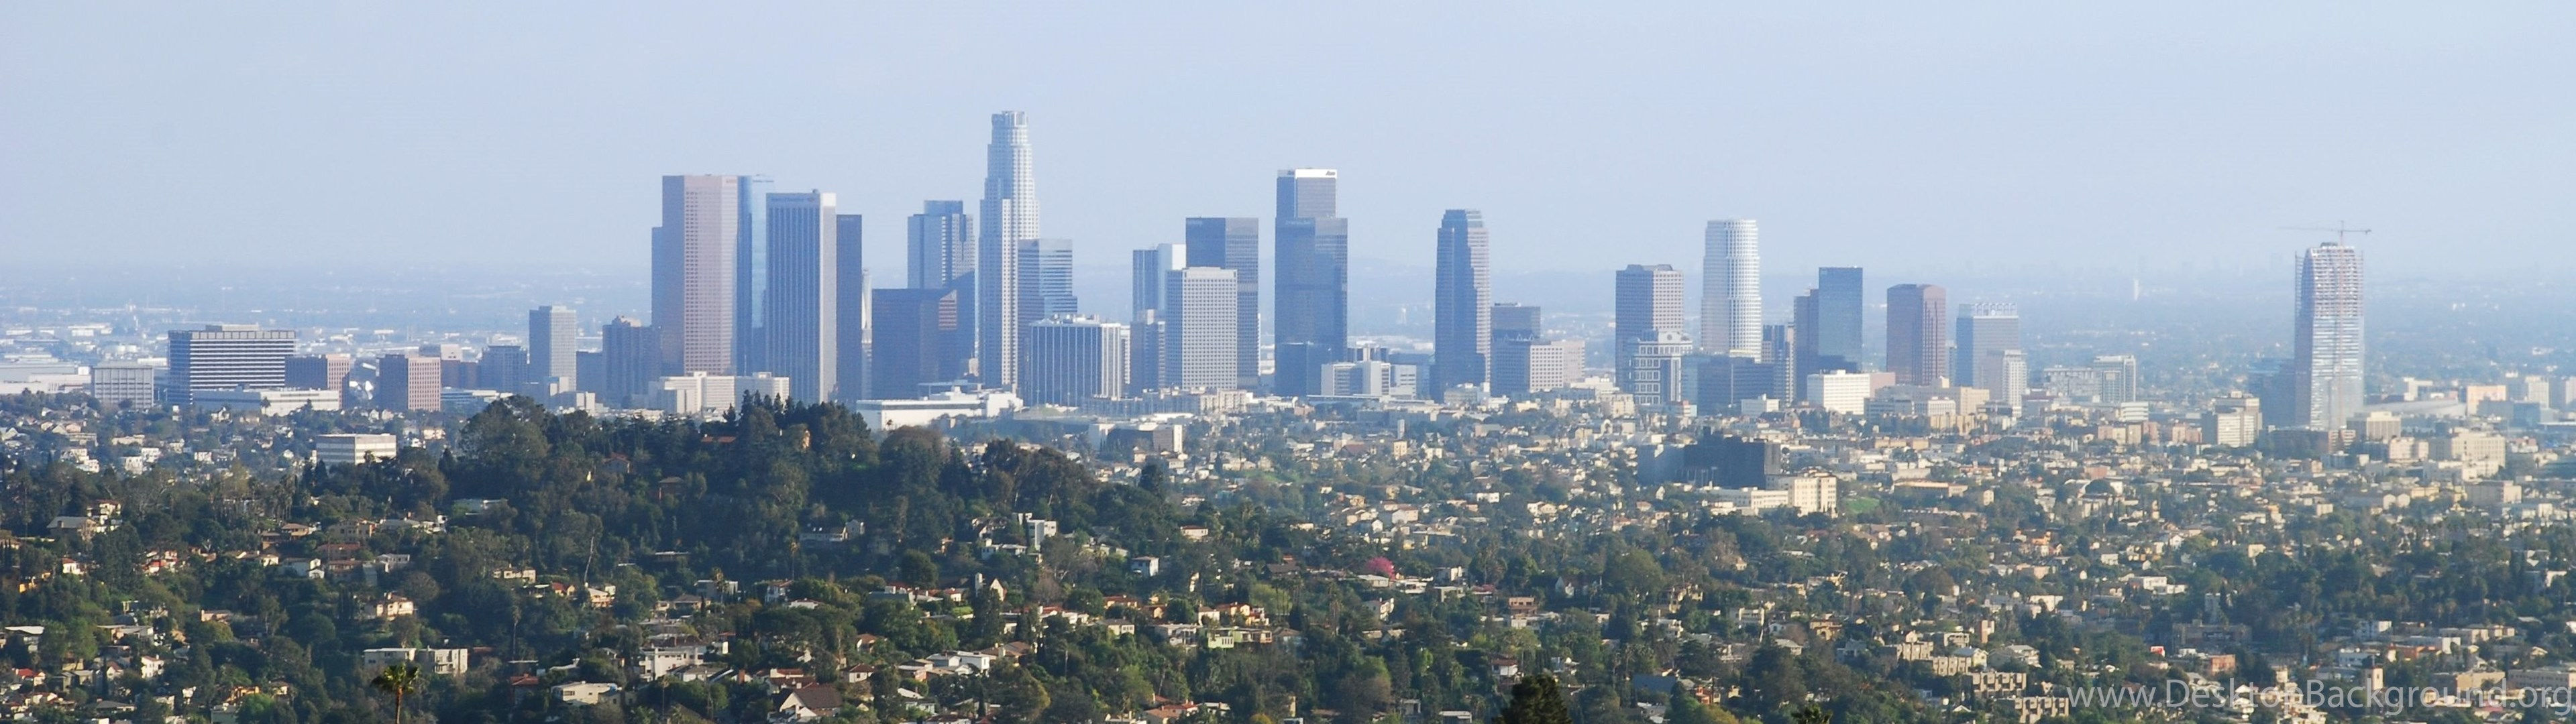 Los Angeles From The Helipad Travel Wallpapers And Stock Photo Desktop Background